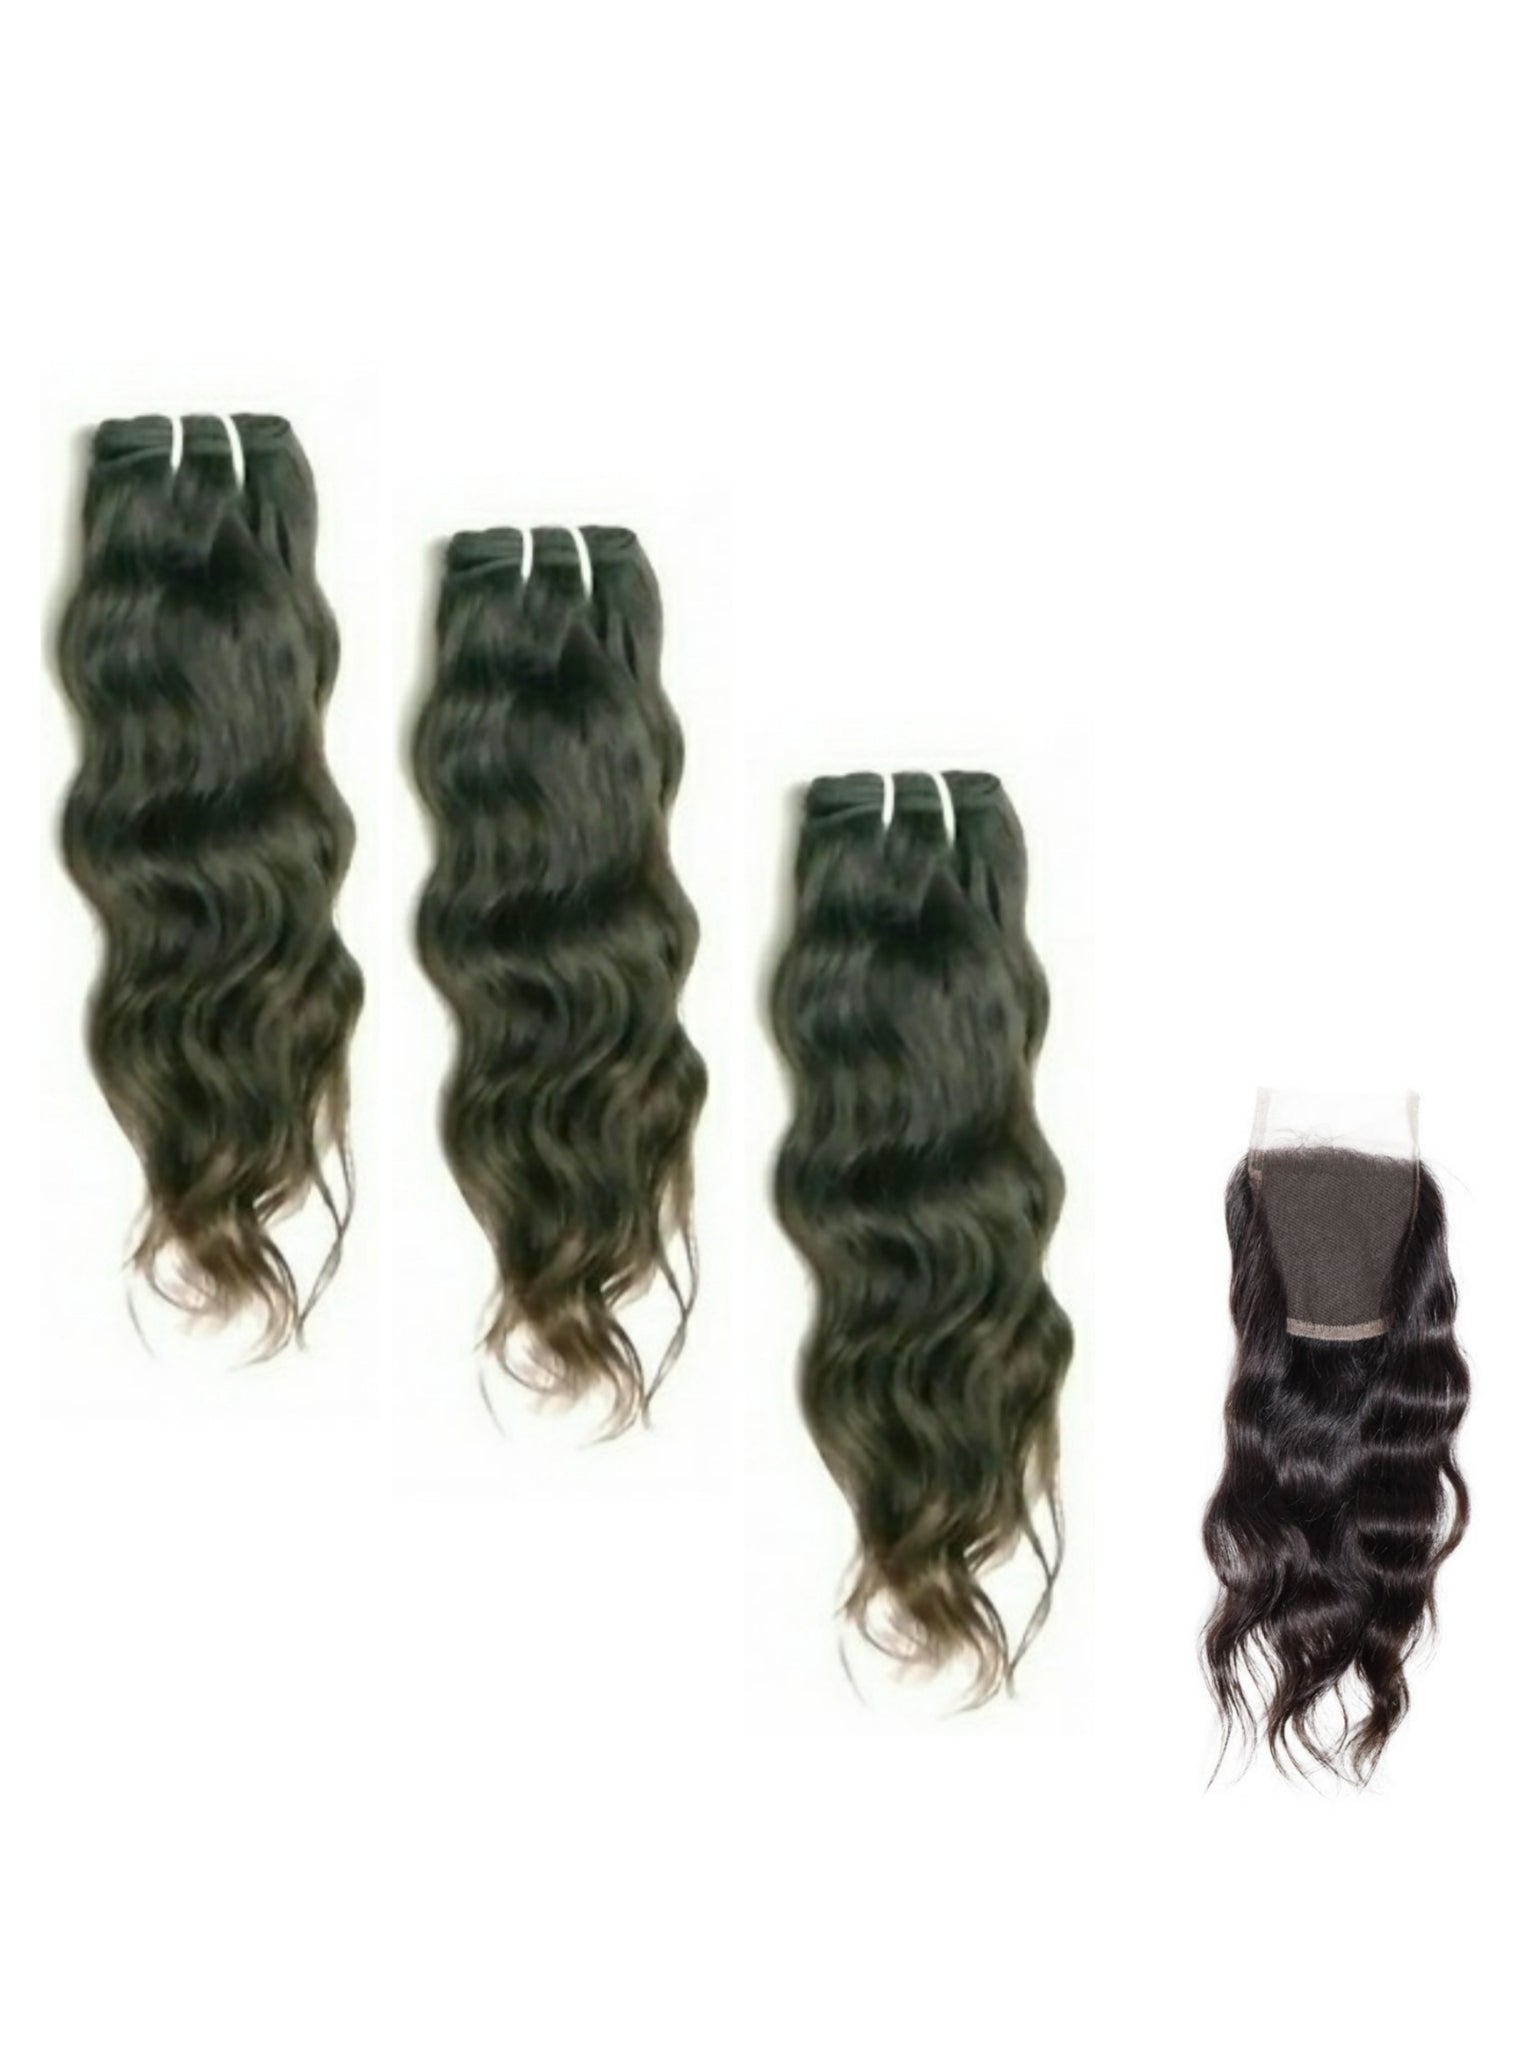 Human Hair Extensions - Raw Indian Wavy 3 Bundles 14 16 18 Plus Closure